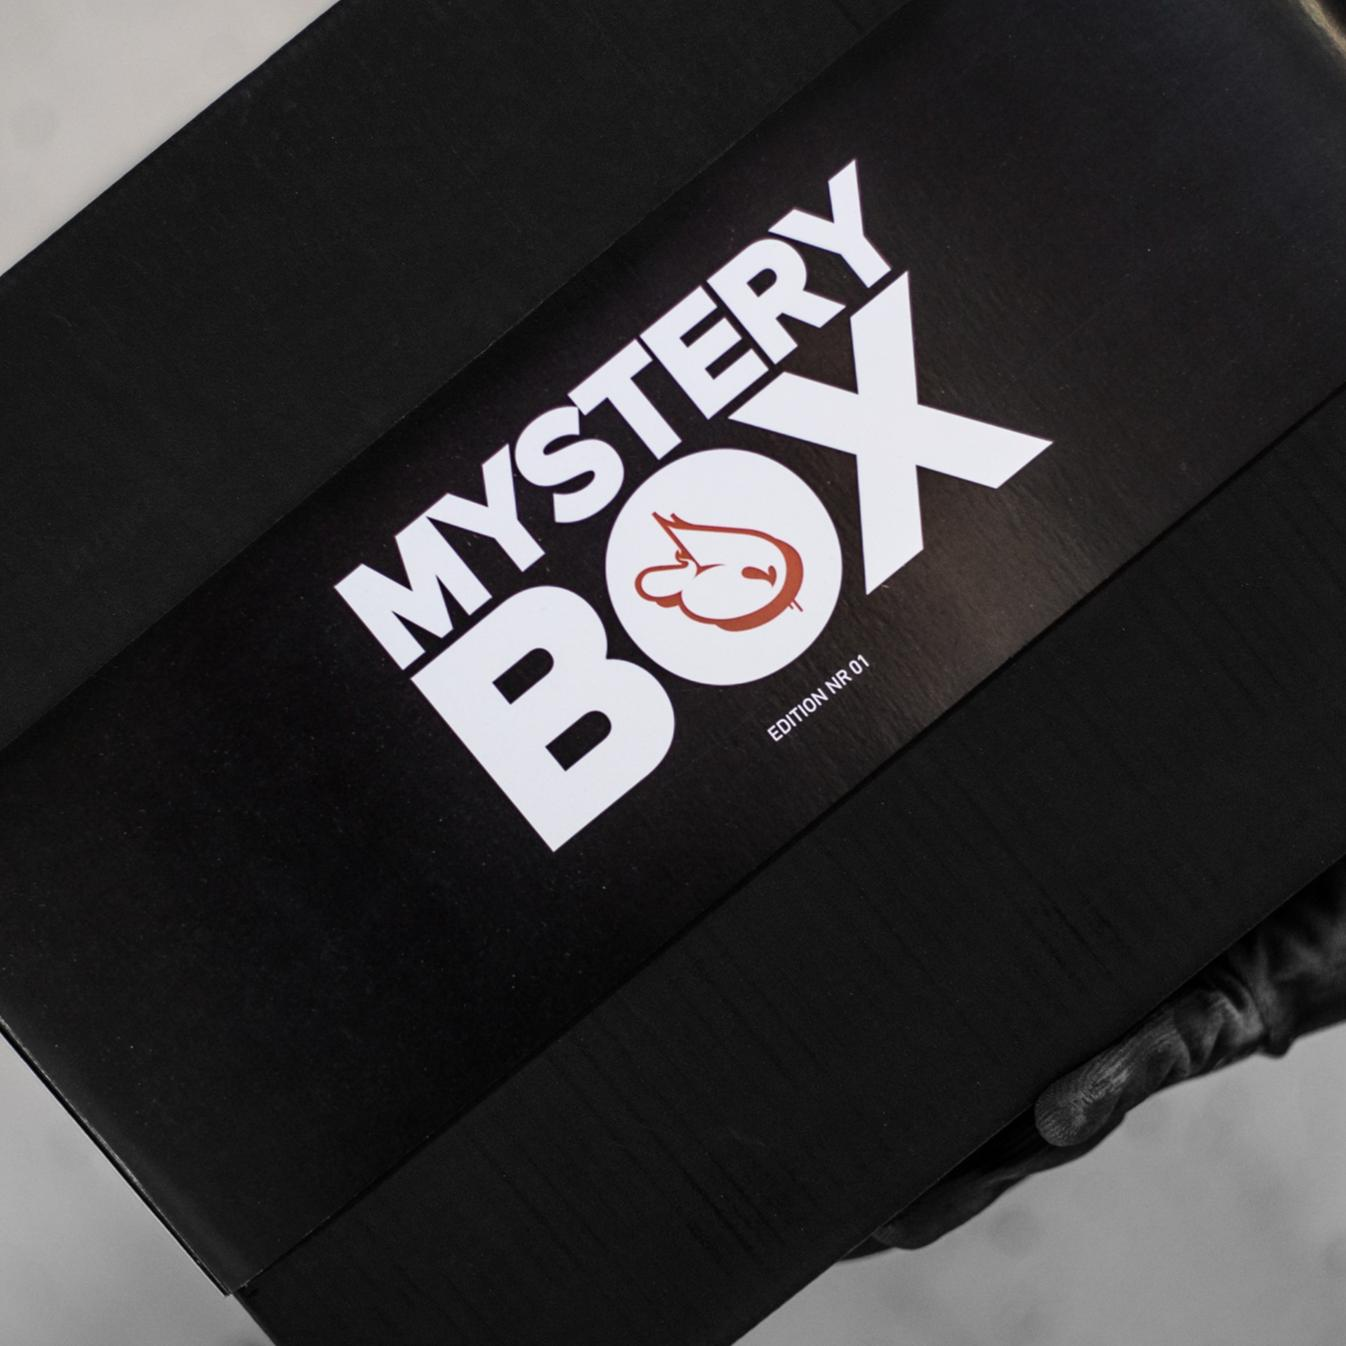 A work by Does - Mystery box edition number one 1